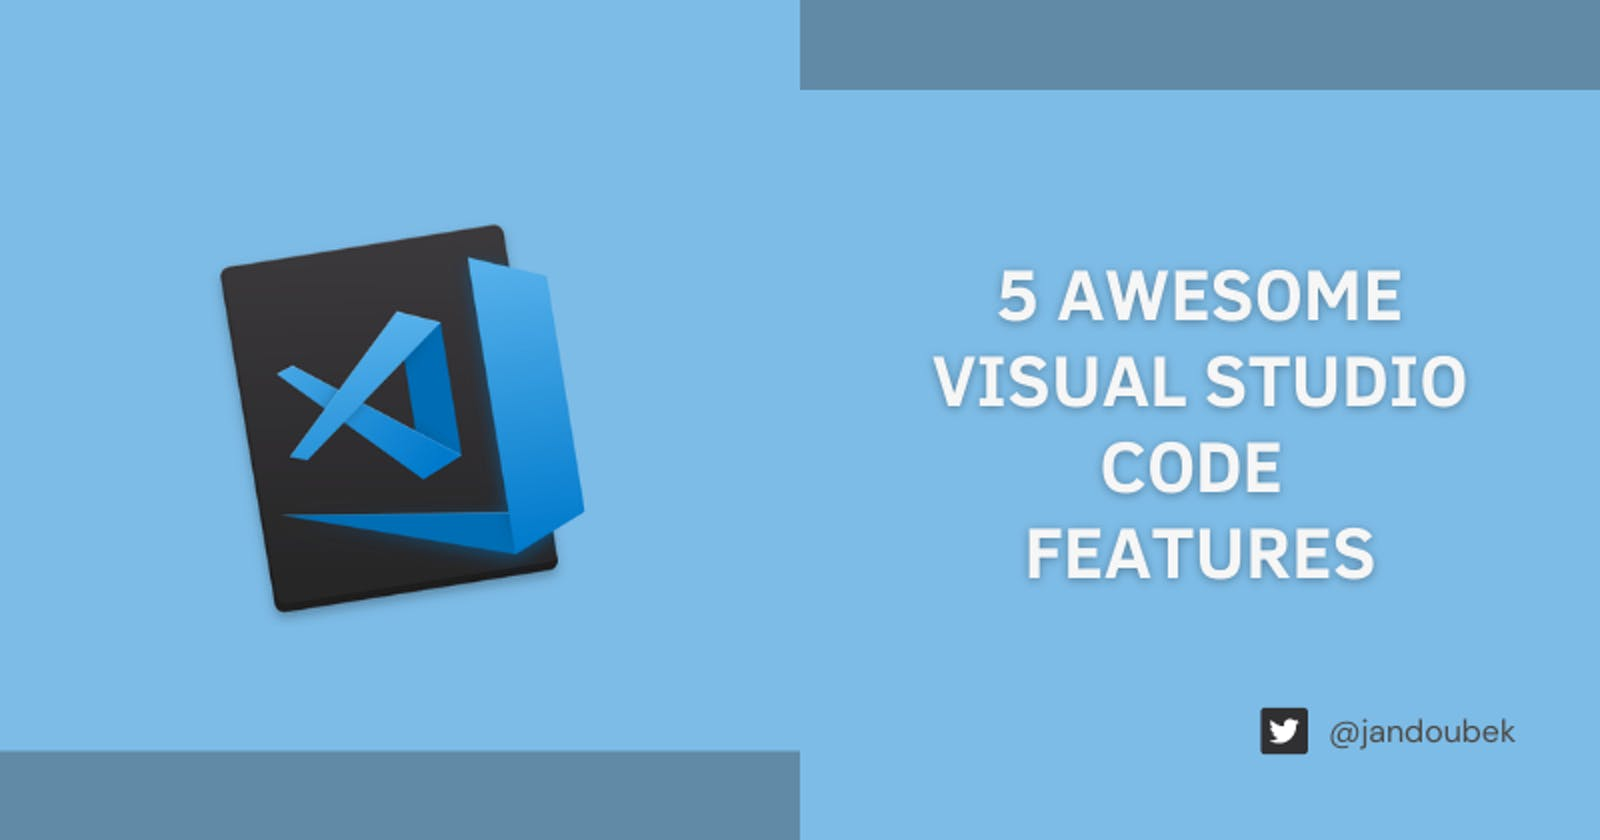 5 Awesome Visual Studio Code Features